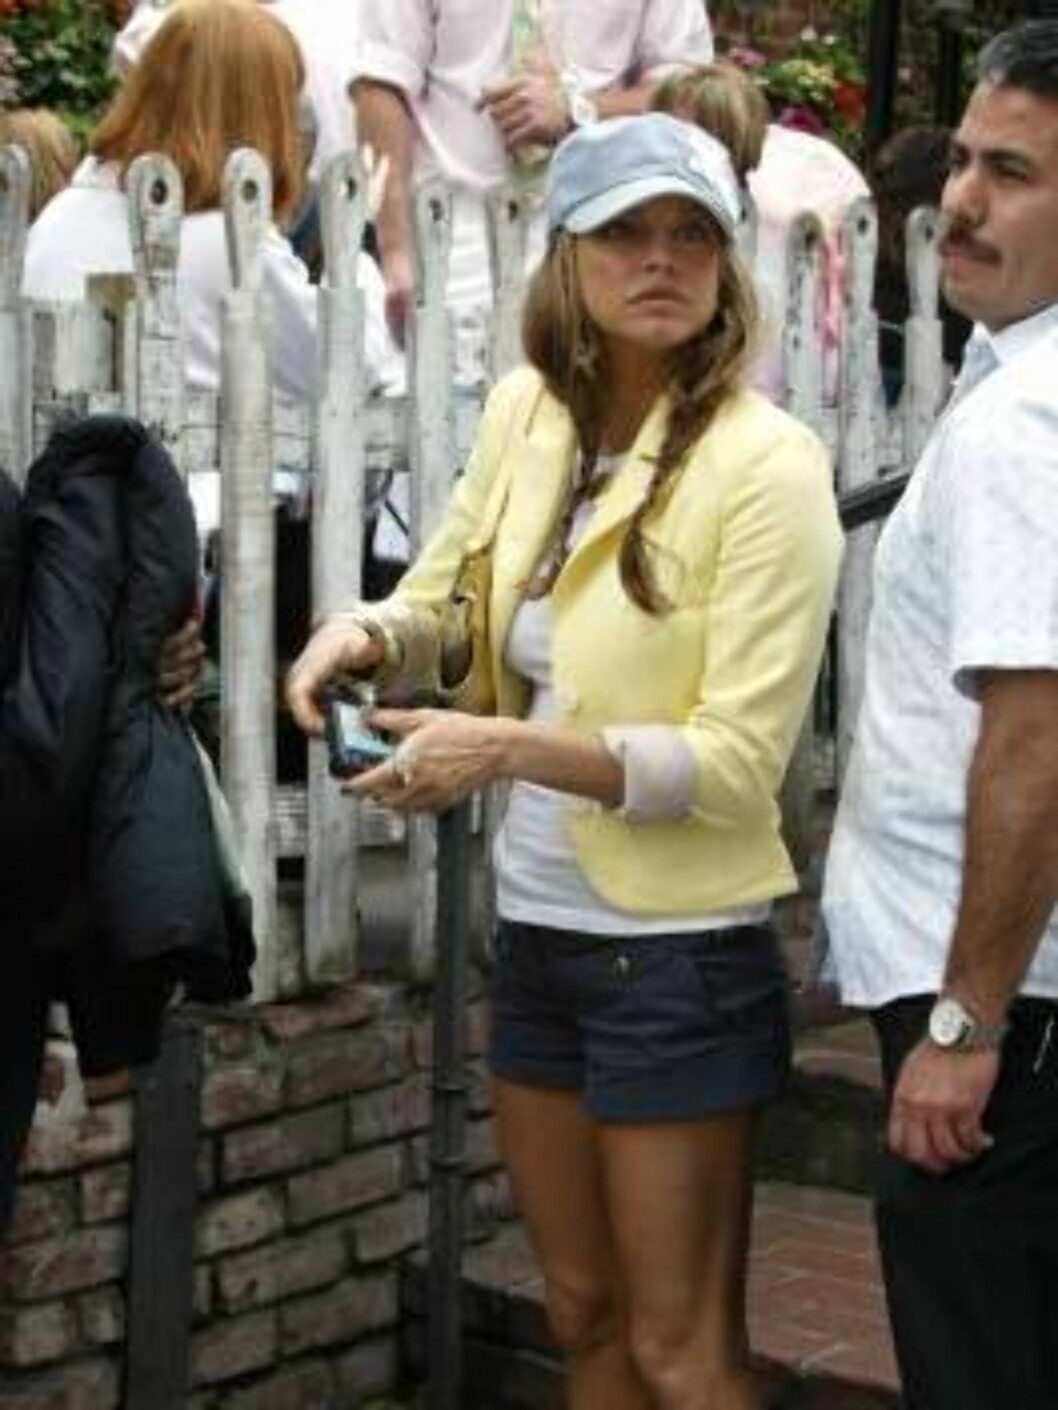 <strong>Code:</strong> X17XX8 - Garcia, Beverly Hills, USA, 16.03.2005: Black Eyed Peas singer Fergie visits Beverly Hills eatery The Ivy in shorts. All Over Press / X17 Agency / Garcia / ALL OVER PRESS Foto: All Over Press